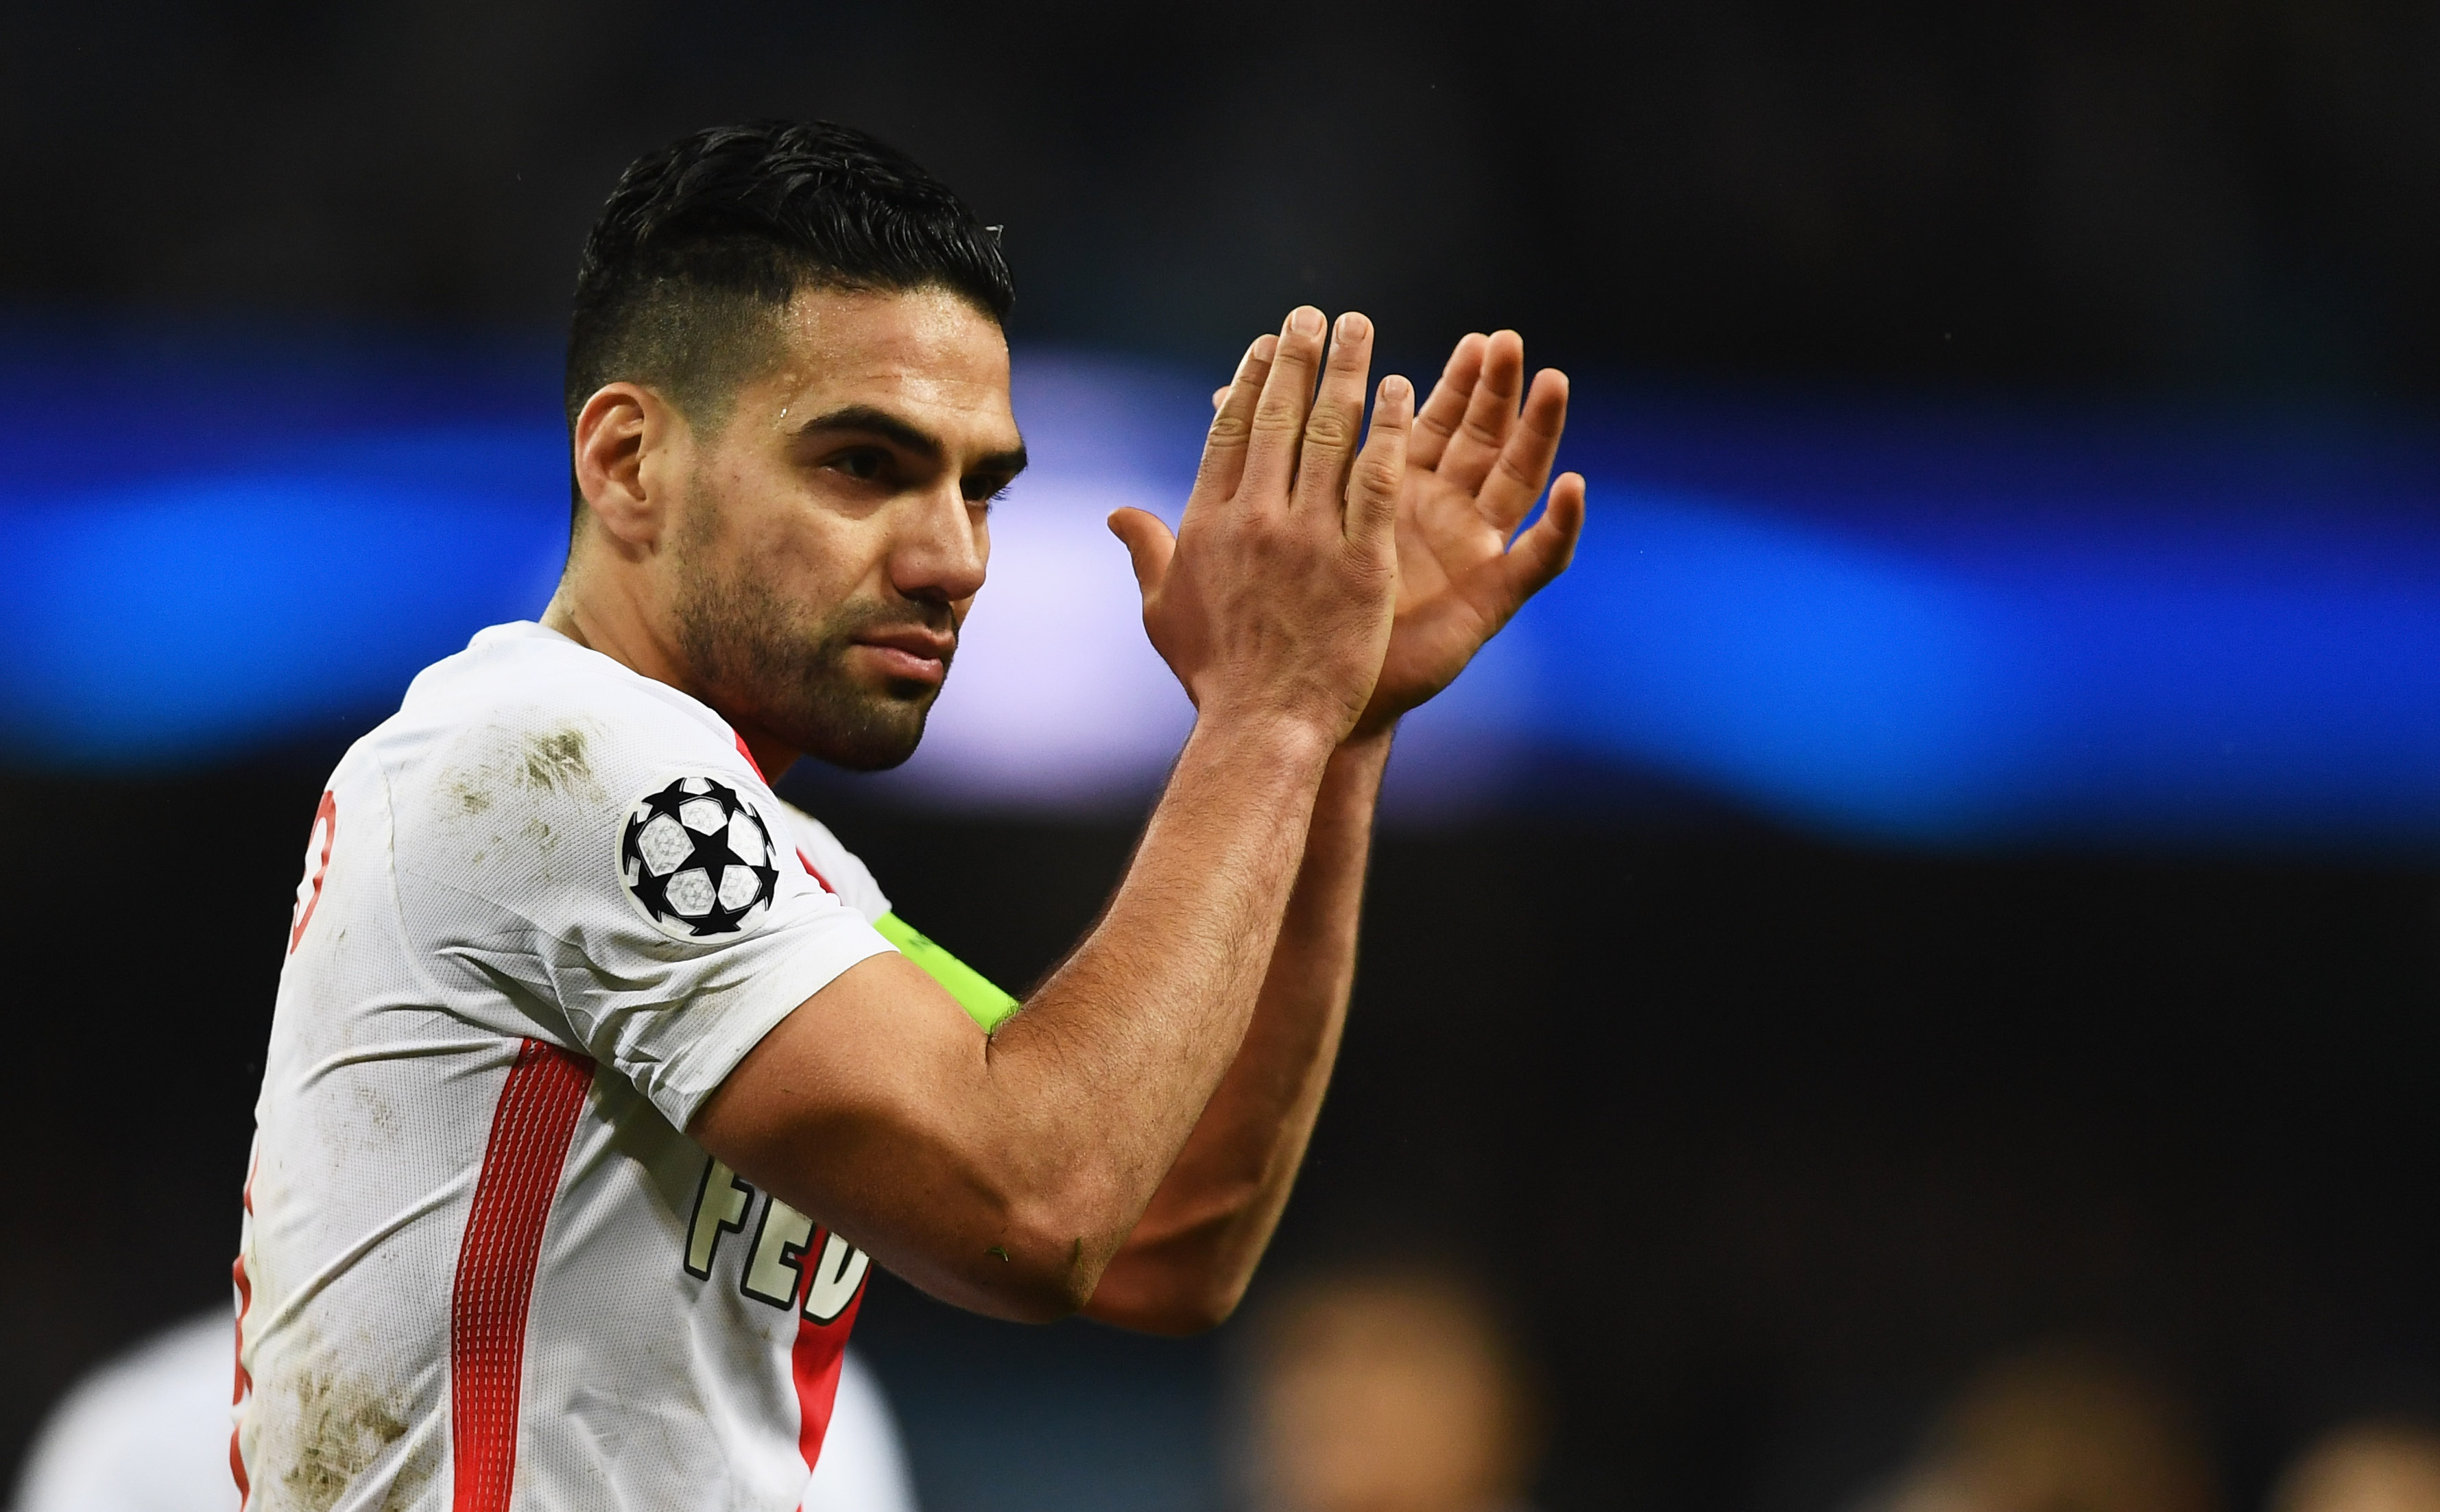 Falcao Tried to Get Peru to Coordinate a Draw So Both Countries (and Not Chile) Would Advance